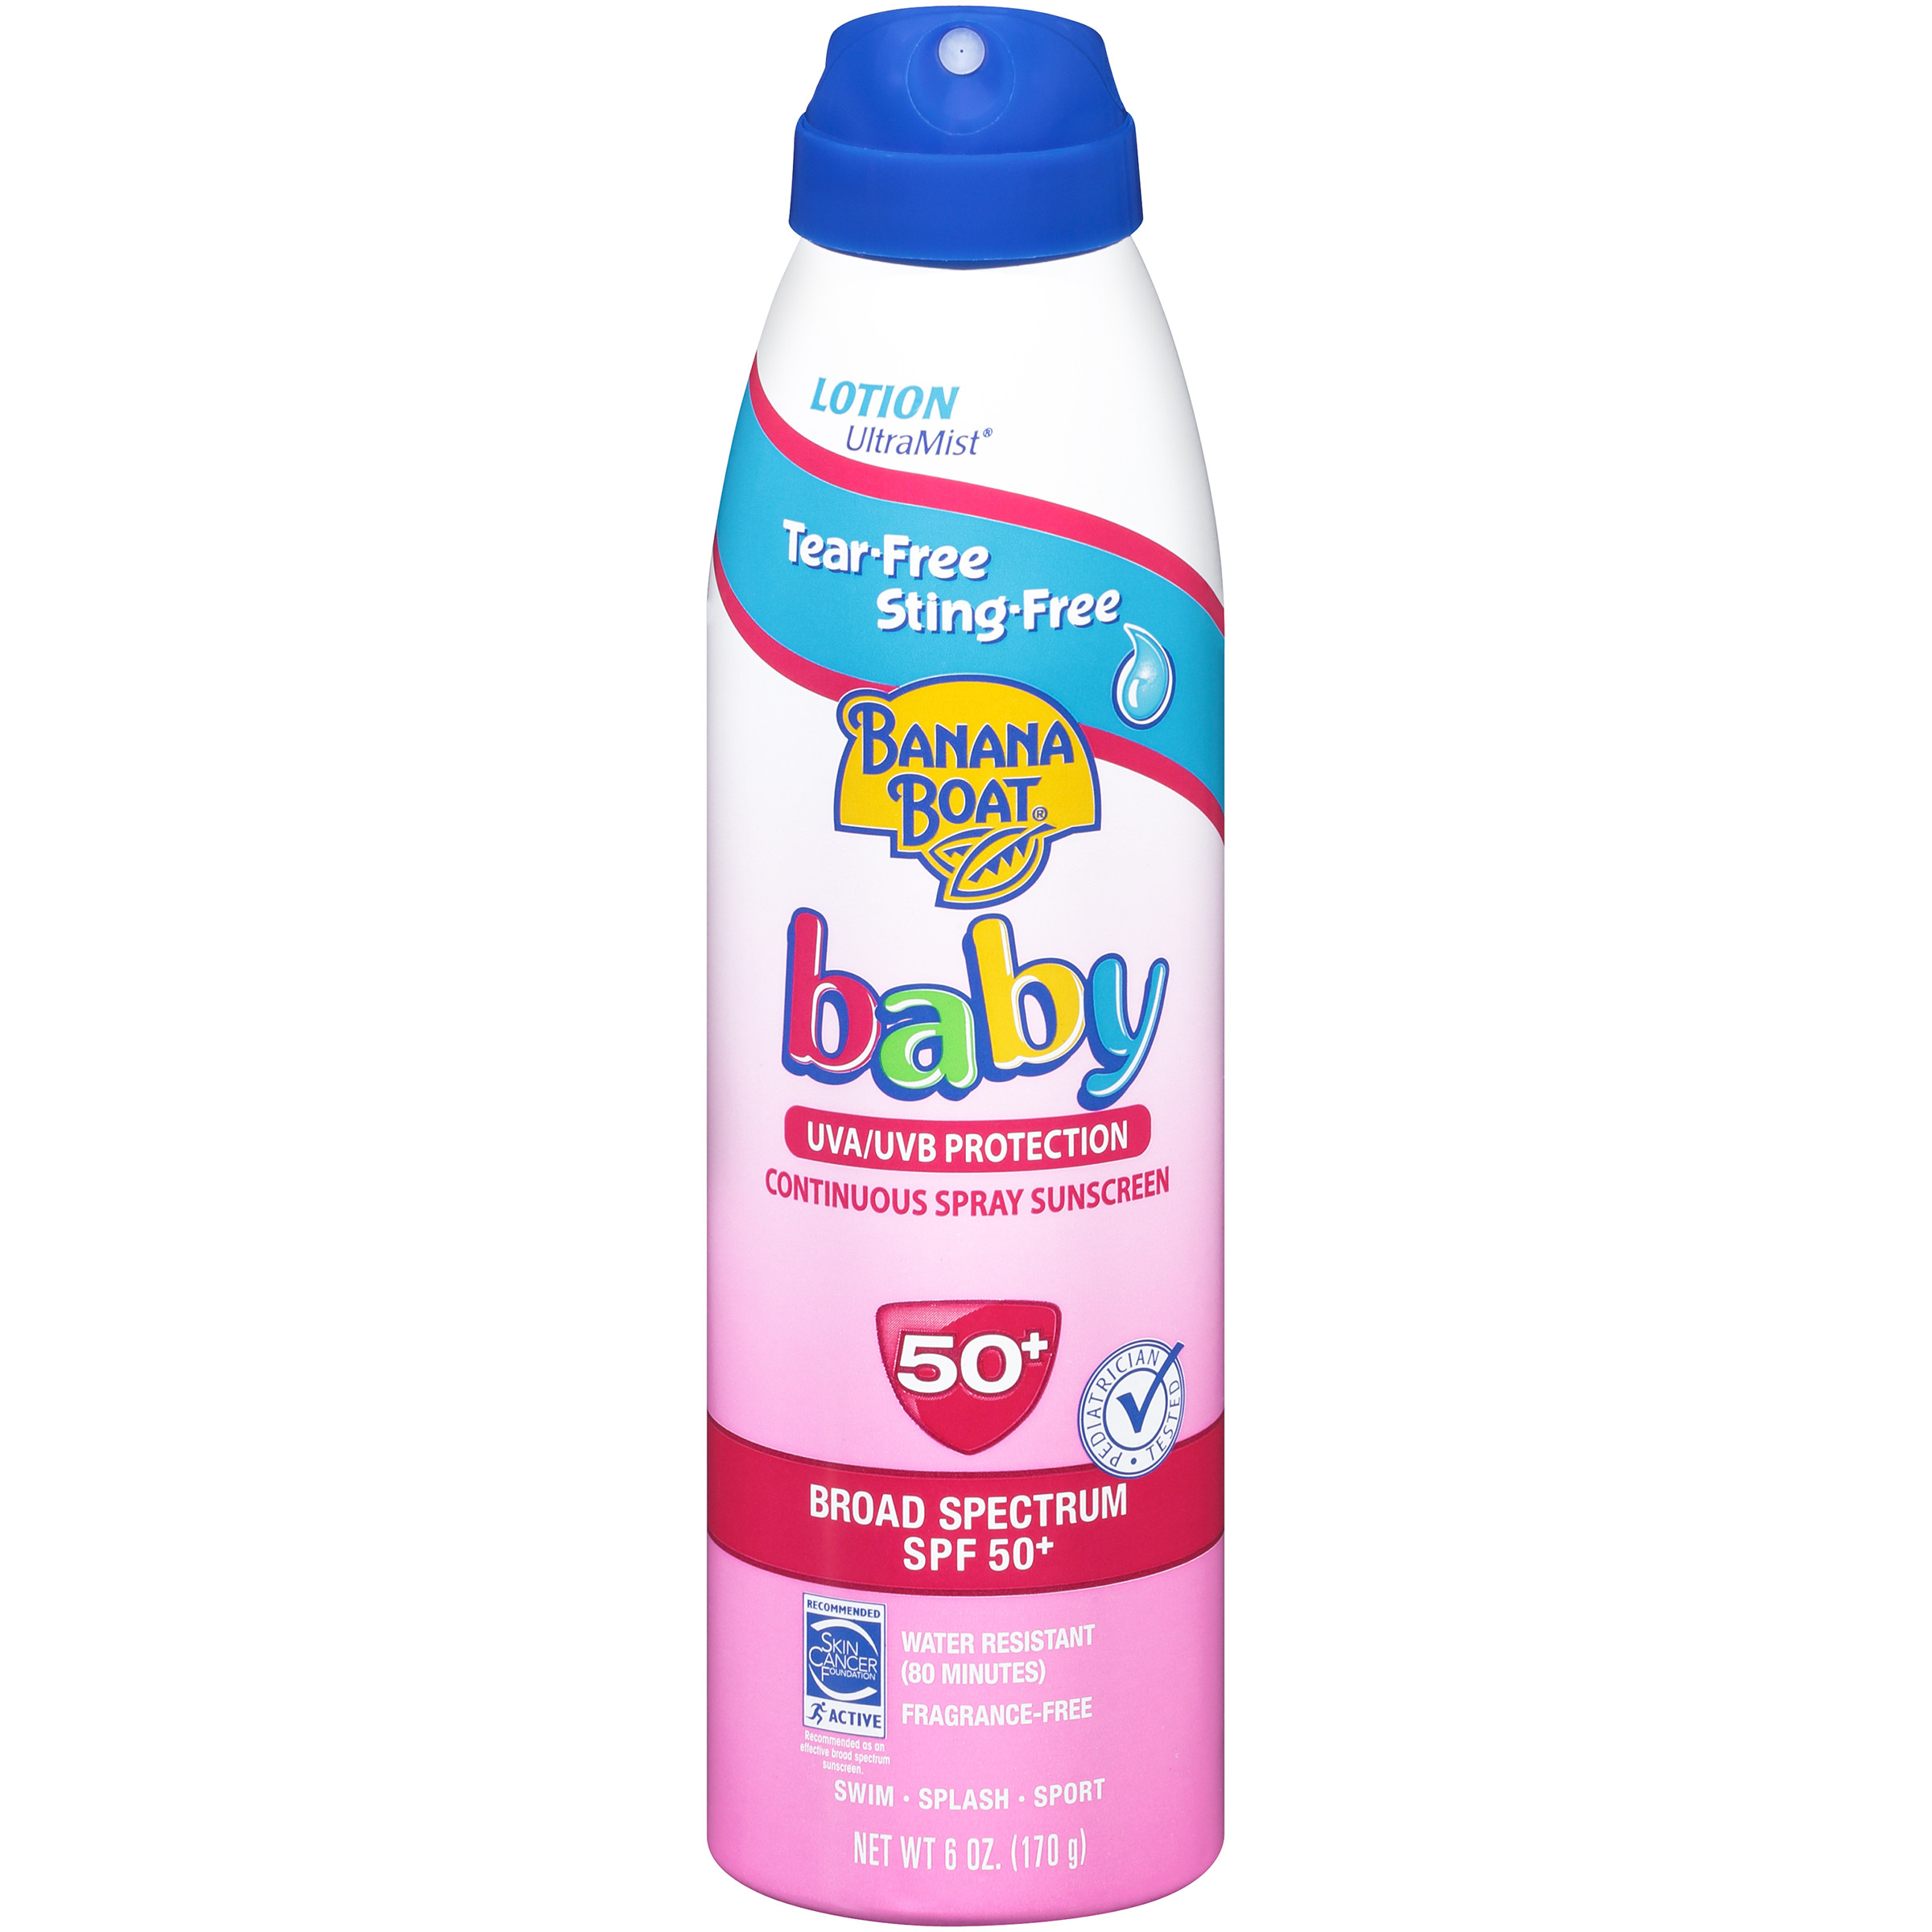 Banana Boat Baby Tear-Free Sting-Free Lotion Spray Sunscreen Broad Spectrum SPF 50 - 6 Ounces